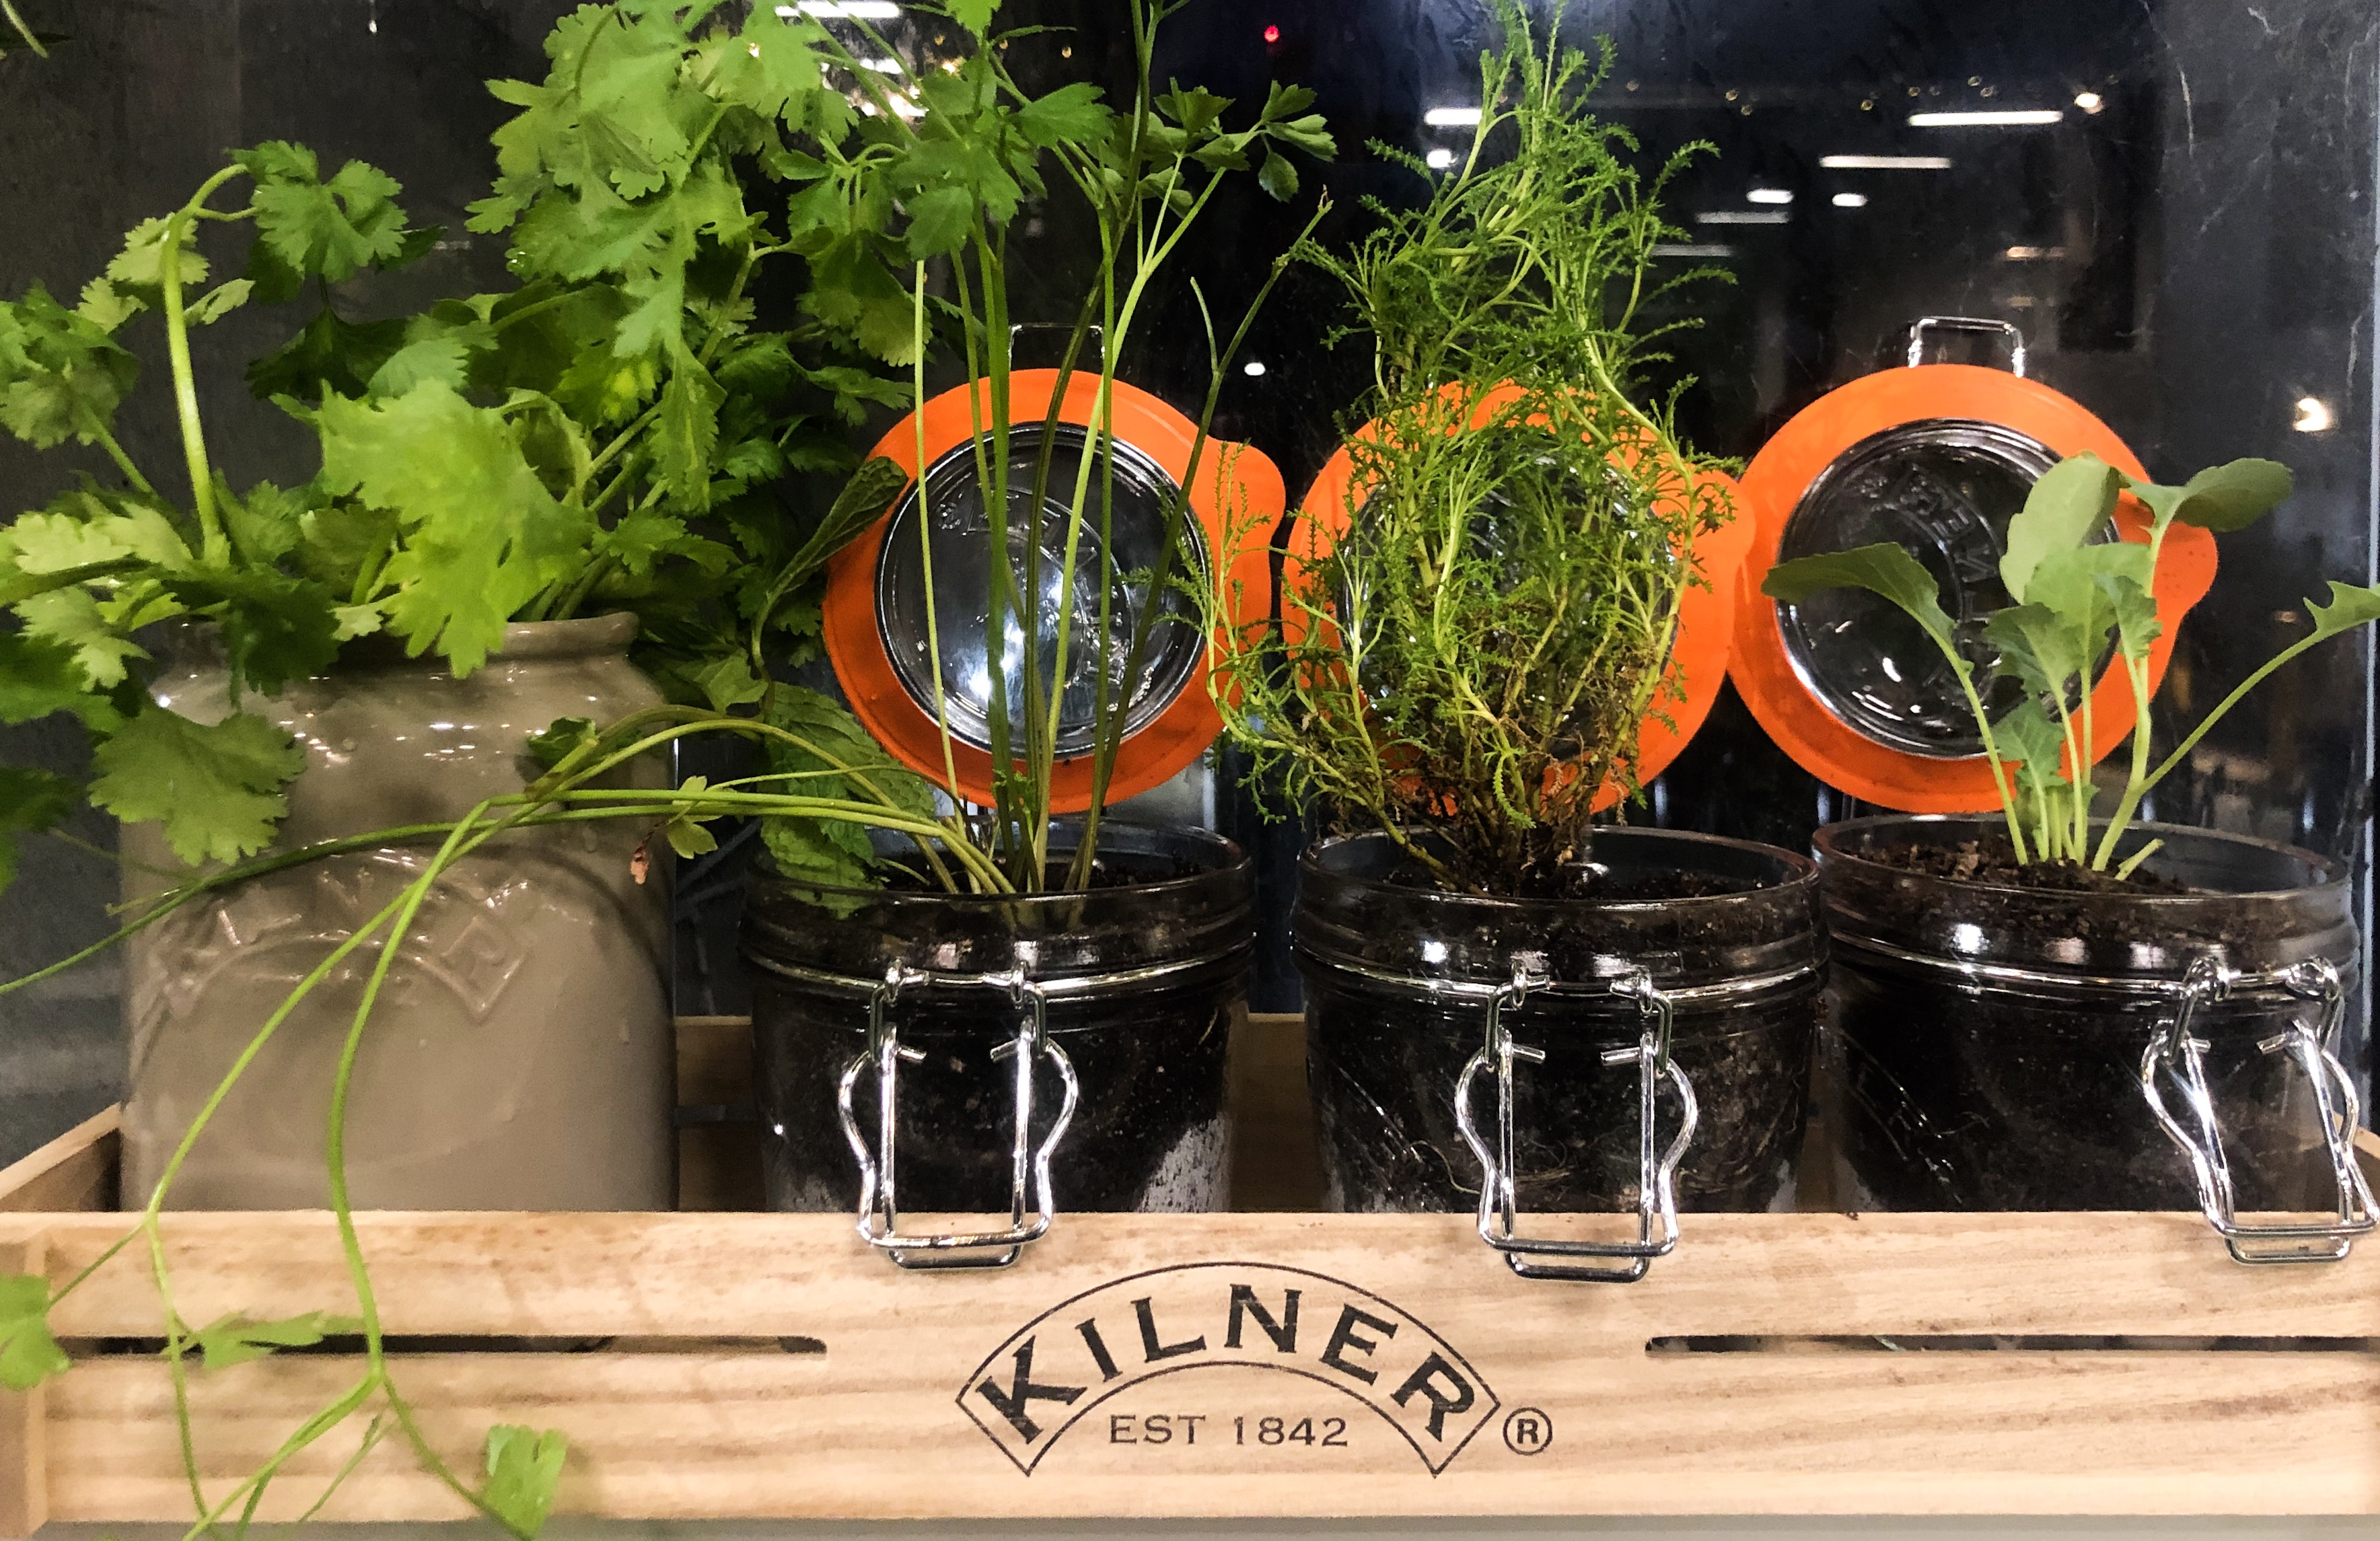 Kilner® Jars being used in the veggie garden